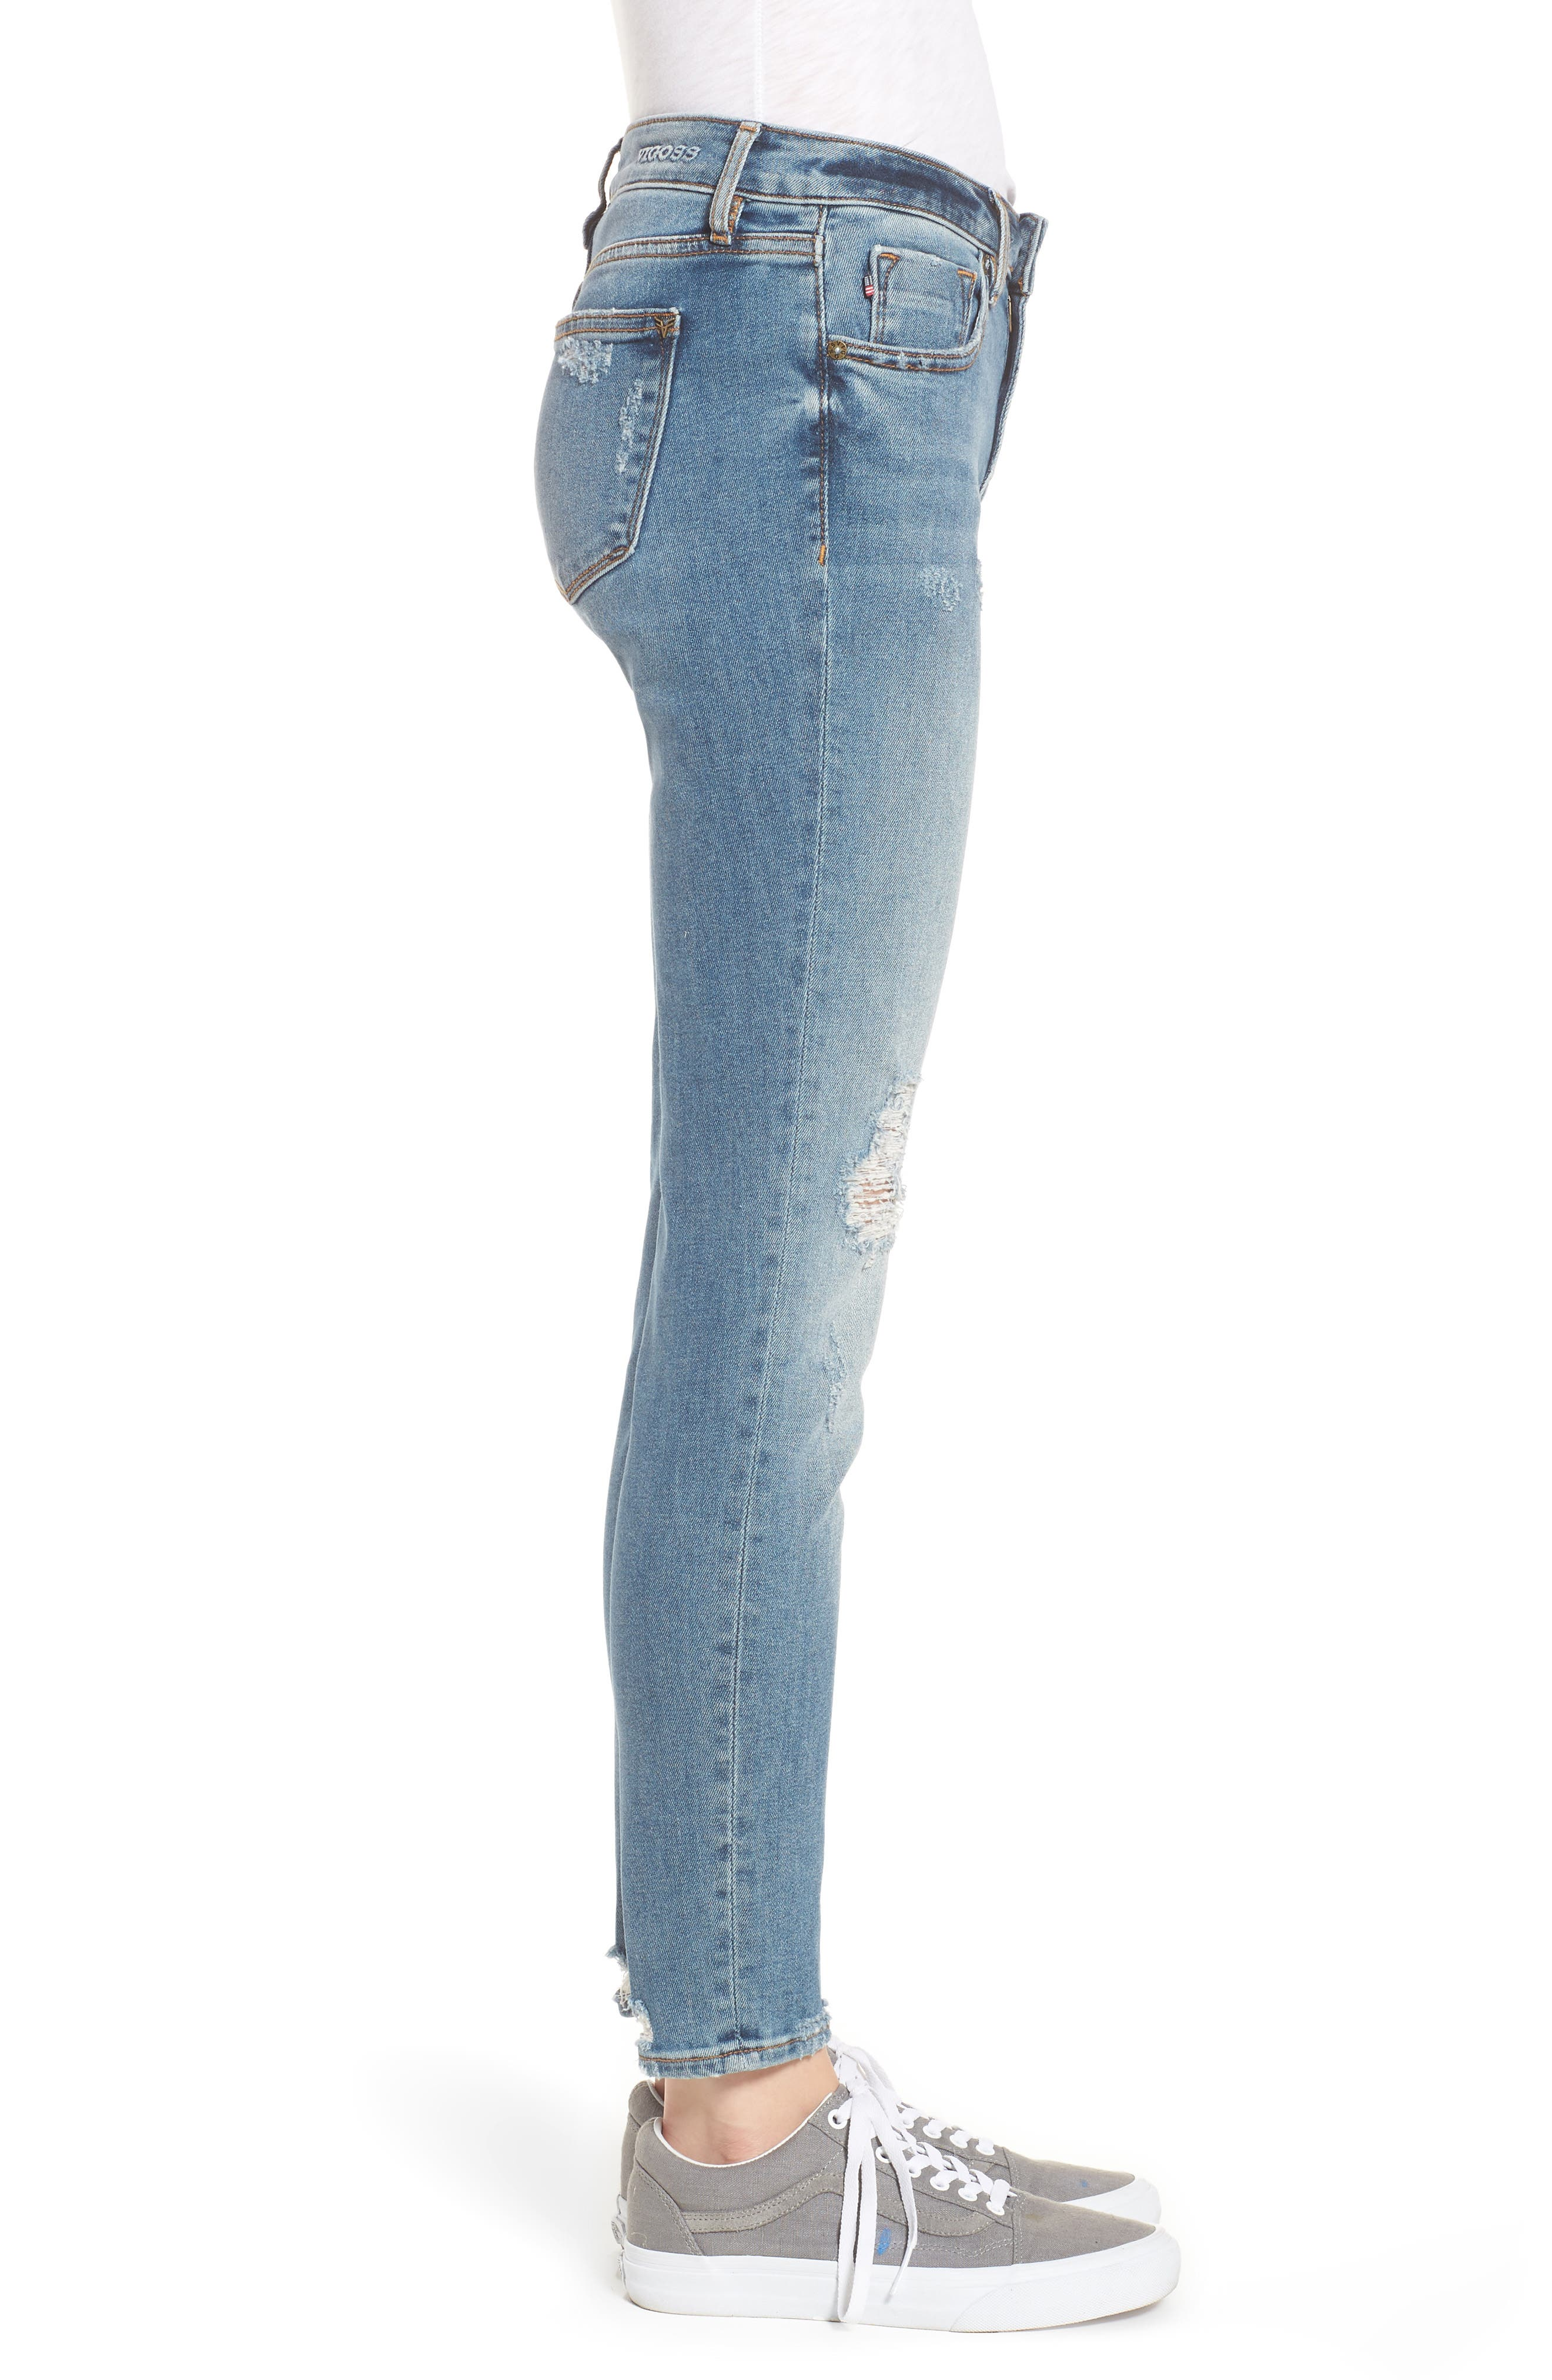 Jagger Decon Distressed Skinny Jeans,                             Alternate thumbnail 3, color,                             426